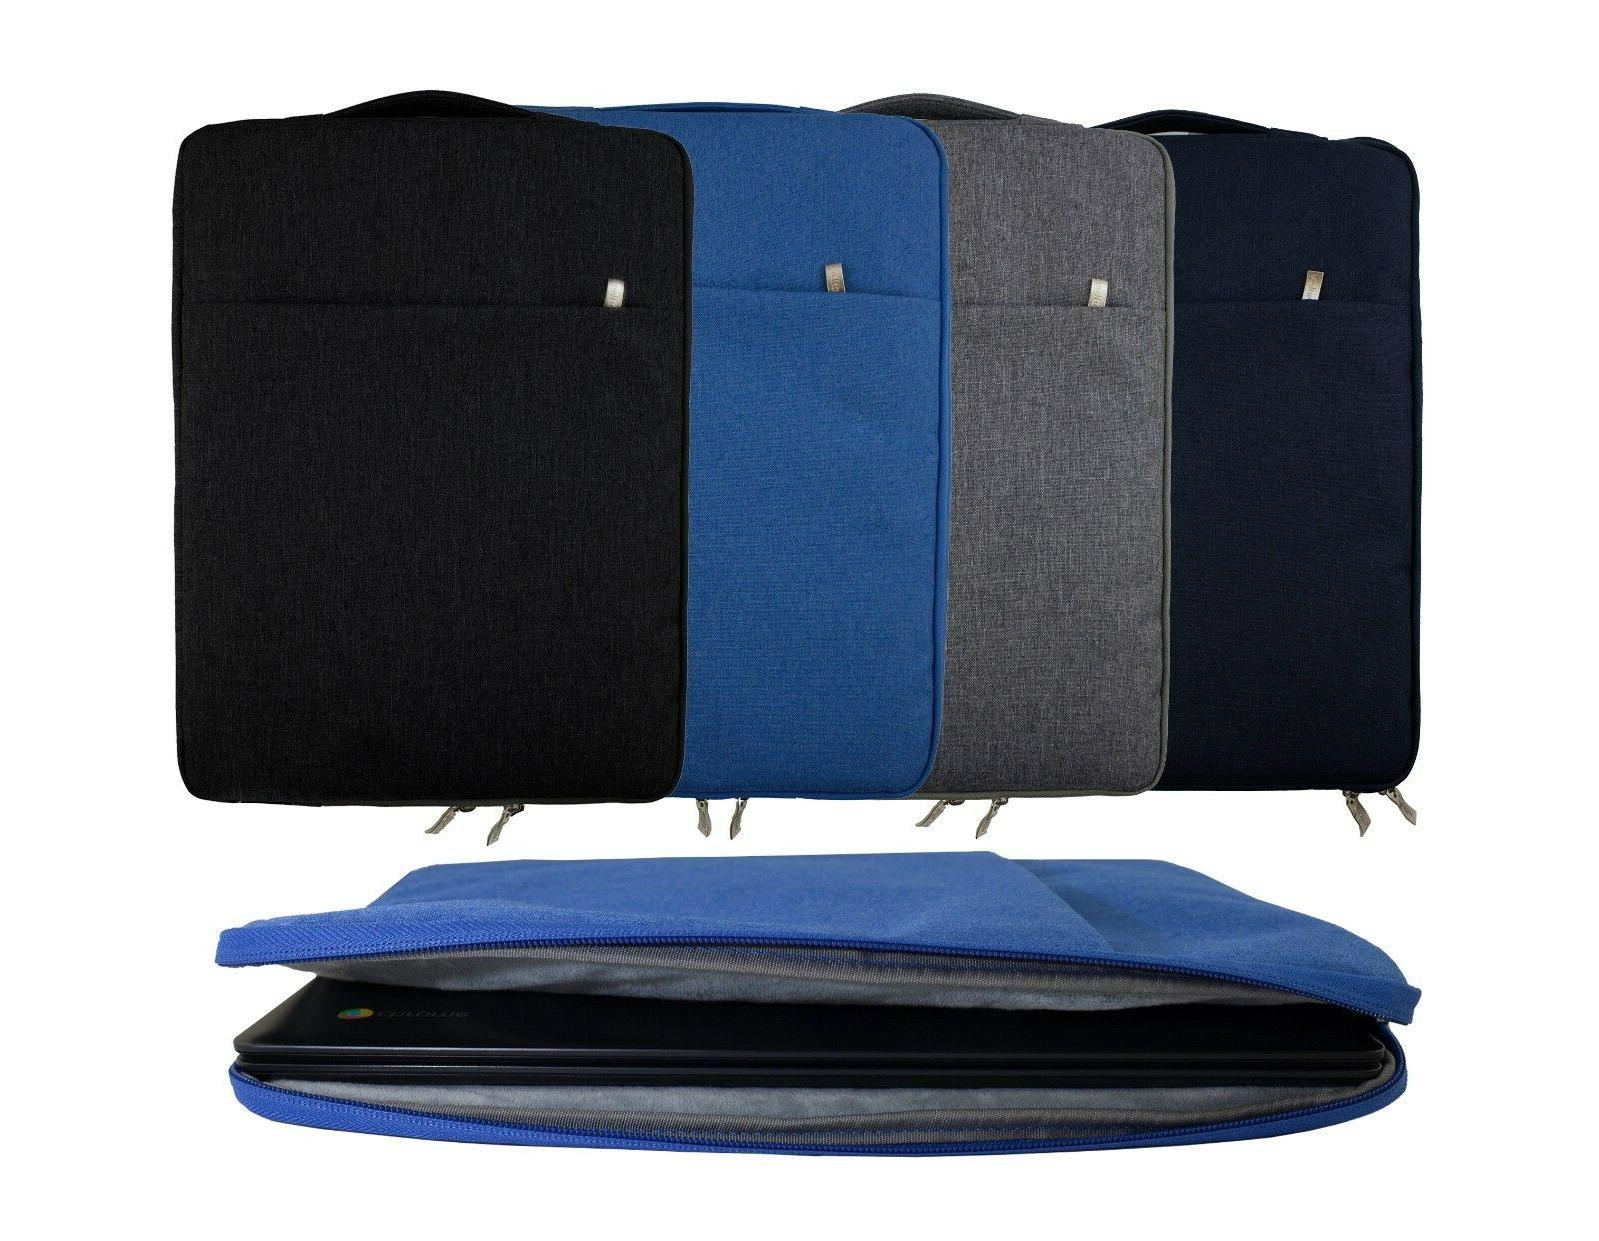 Premium Fabric Tablet Laptop Sleeve Case Fits Dell Inspiron